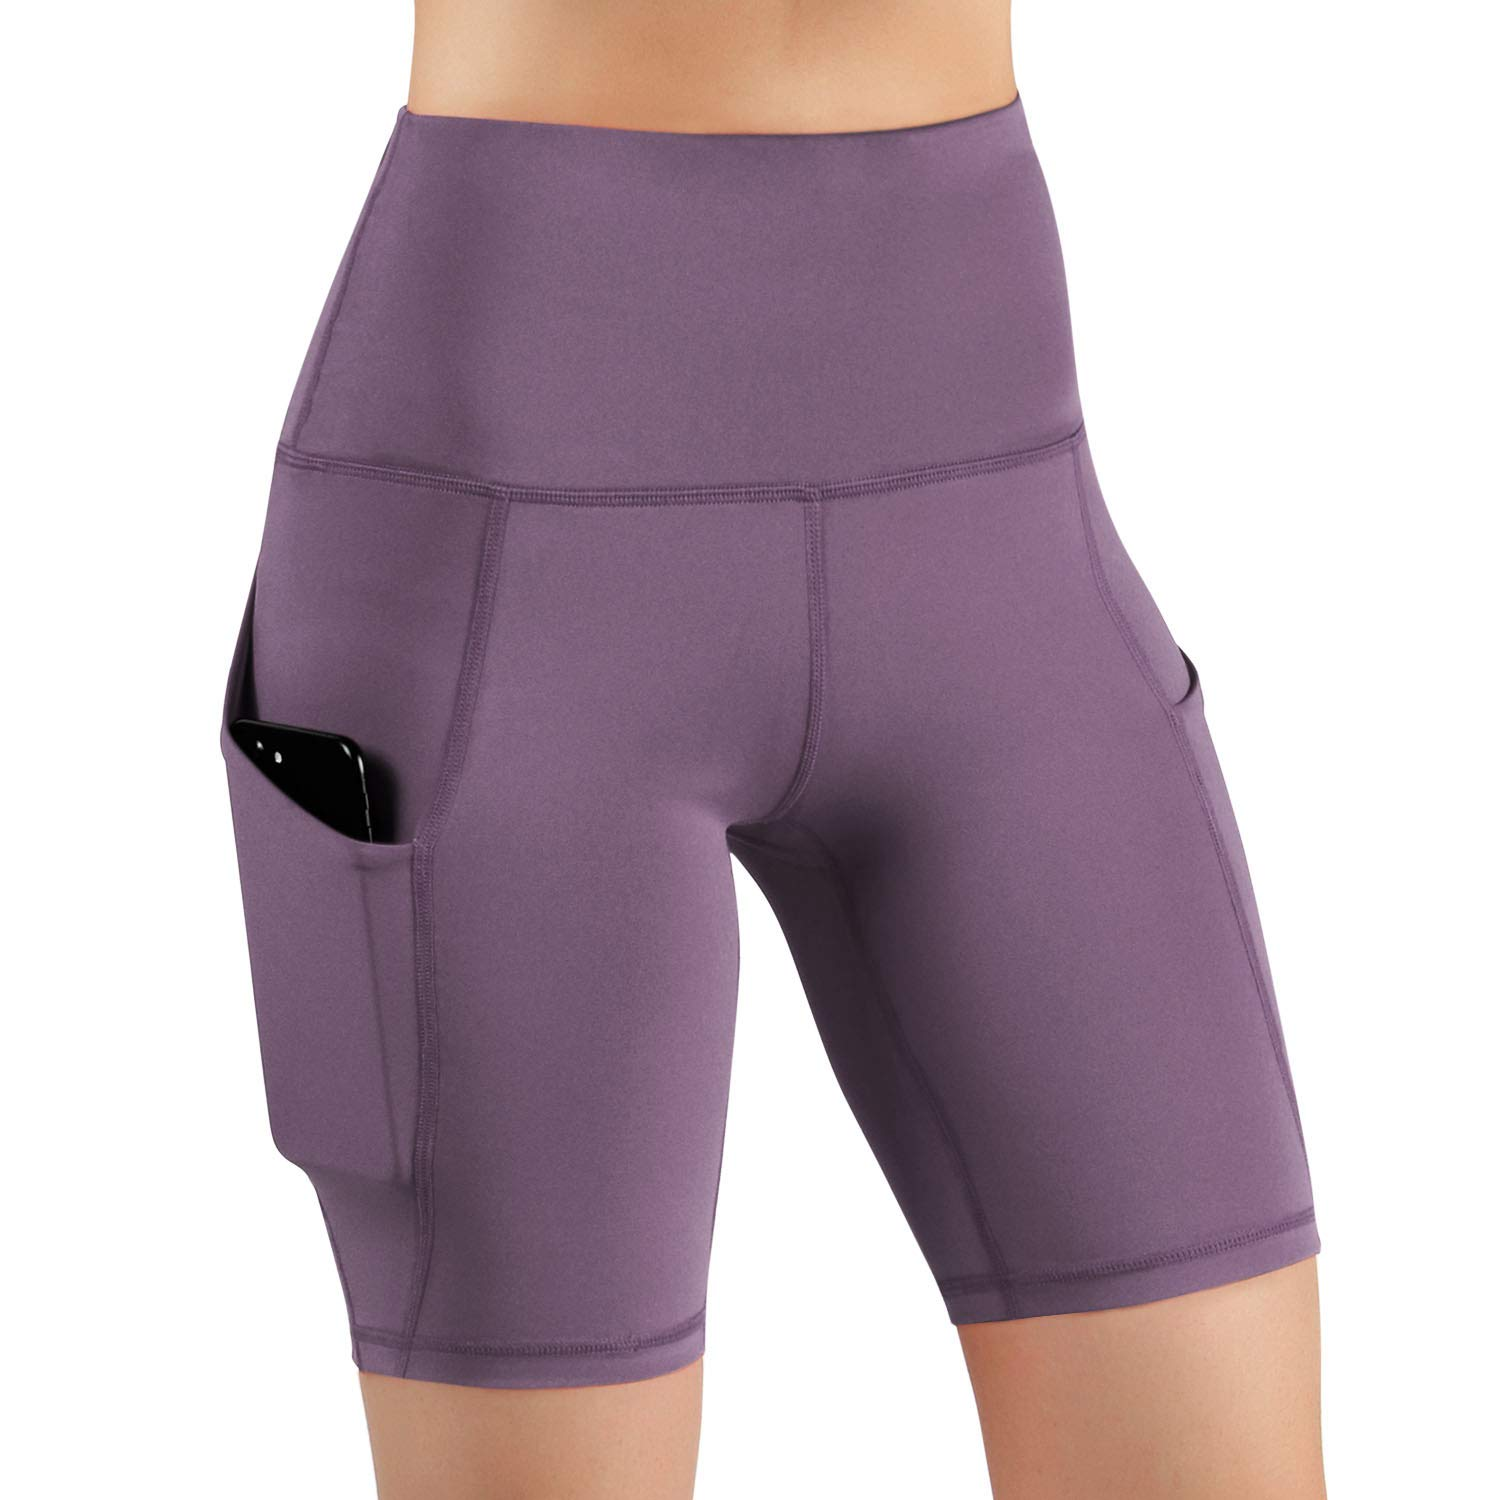 ODODOS High Waist Out Pocket Yoga Short Tummy Control Workout Running Athletic Non See-Through Yoga Shorts,Lavender,X-Small by ODODOS